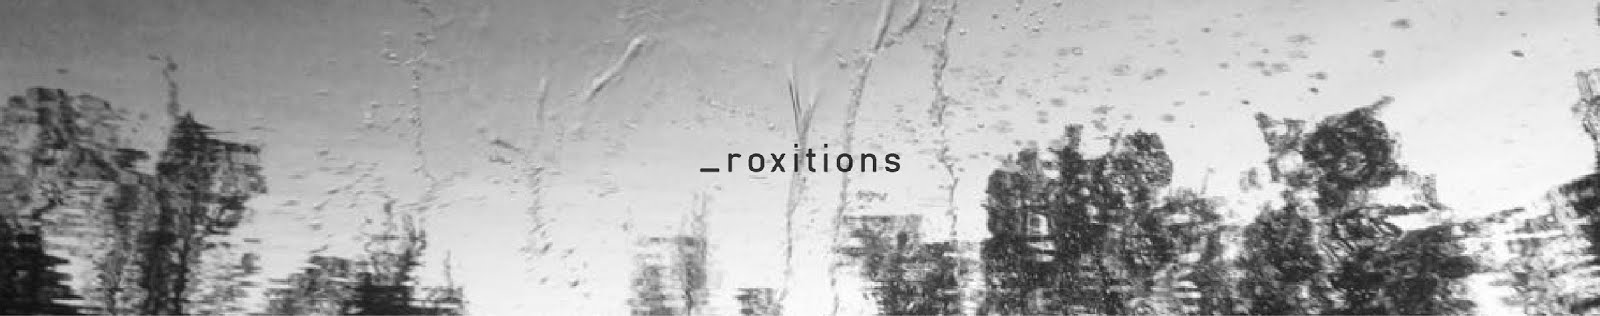 roxitions